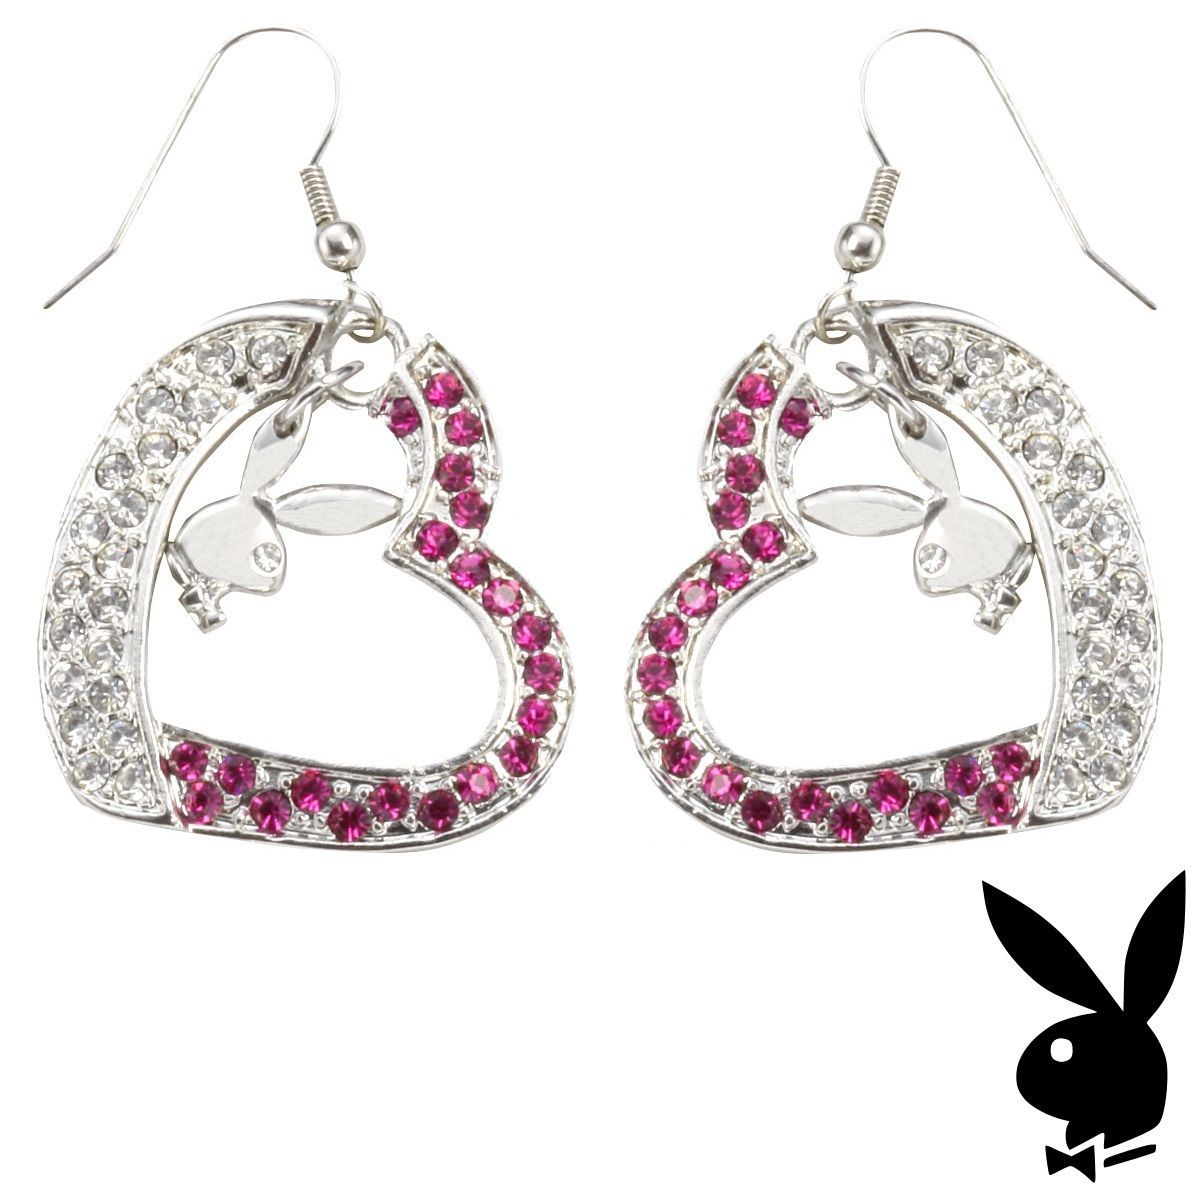 fe17a01e9 S l1600. S l1600. Previous. Playboy Earrings Bunny Heart Charms Dangle Pink Swarovski  Crystals Box RARE HTF